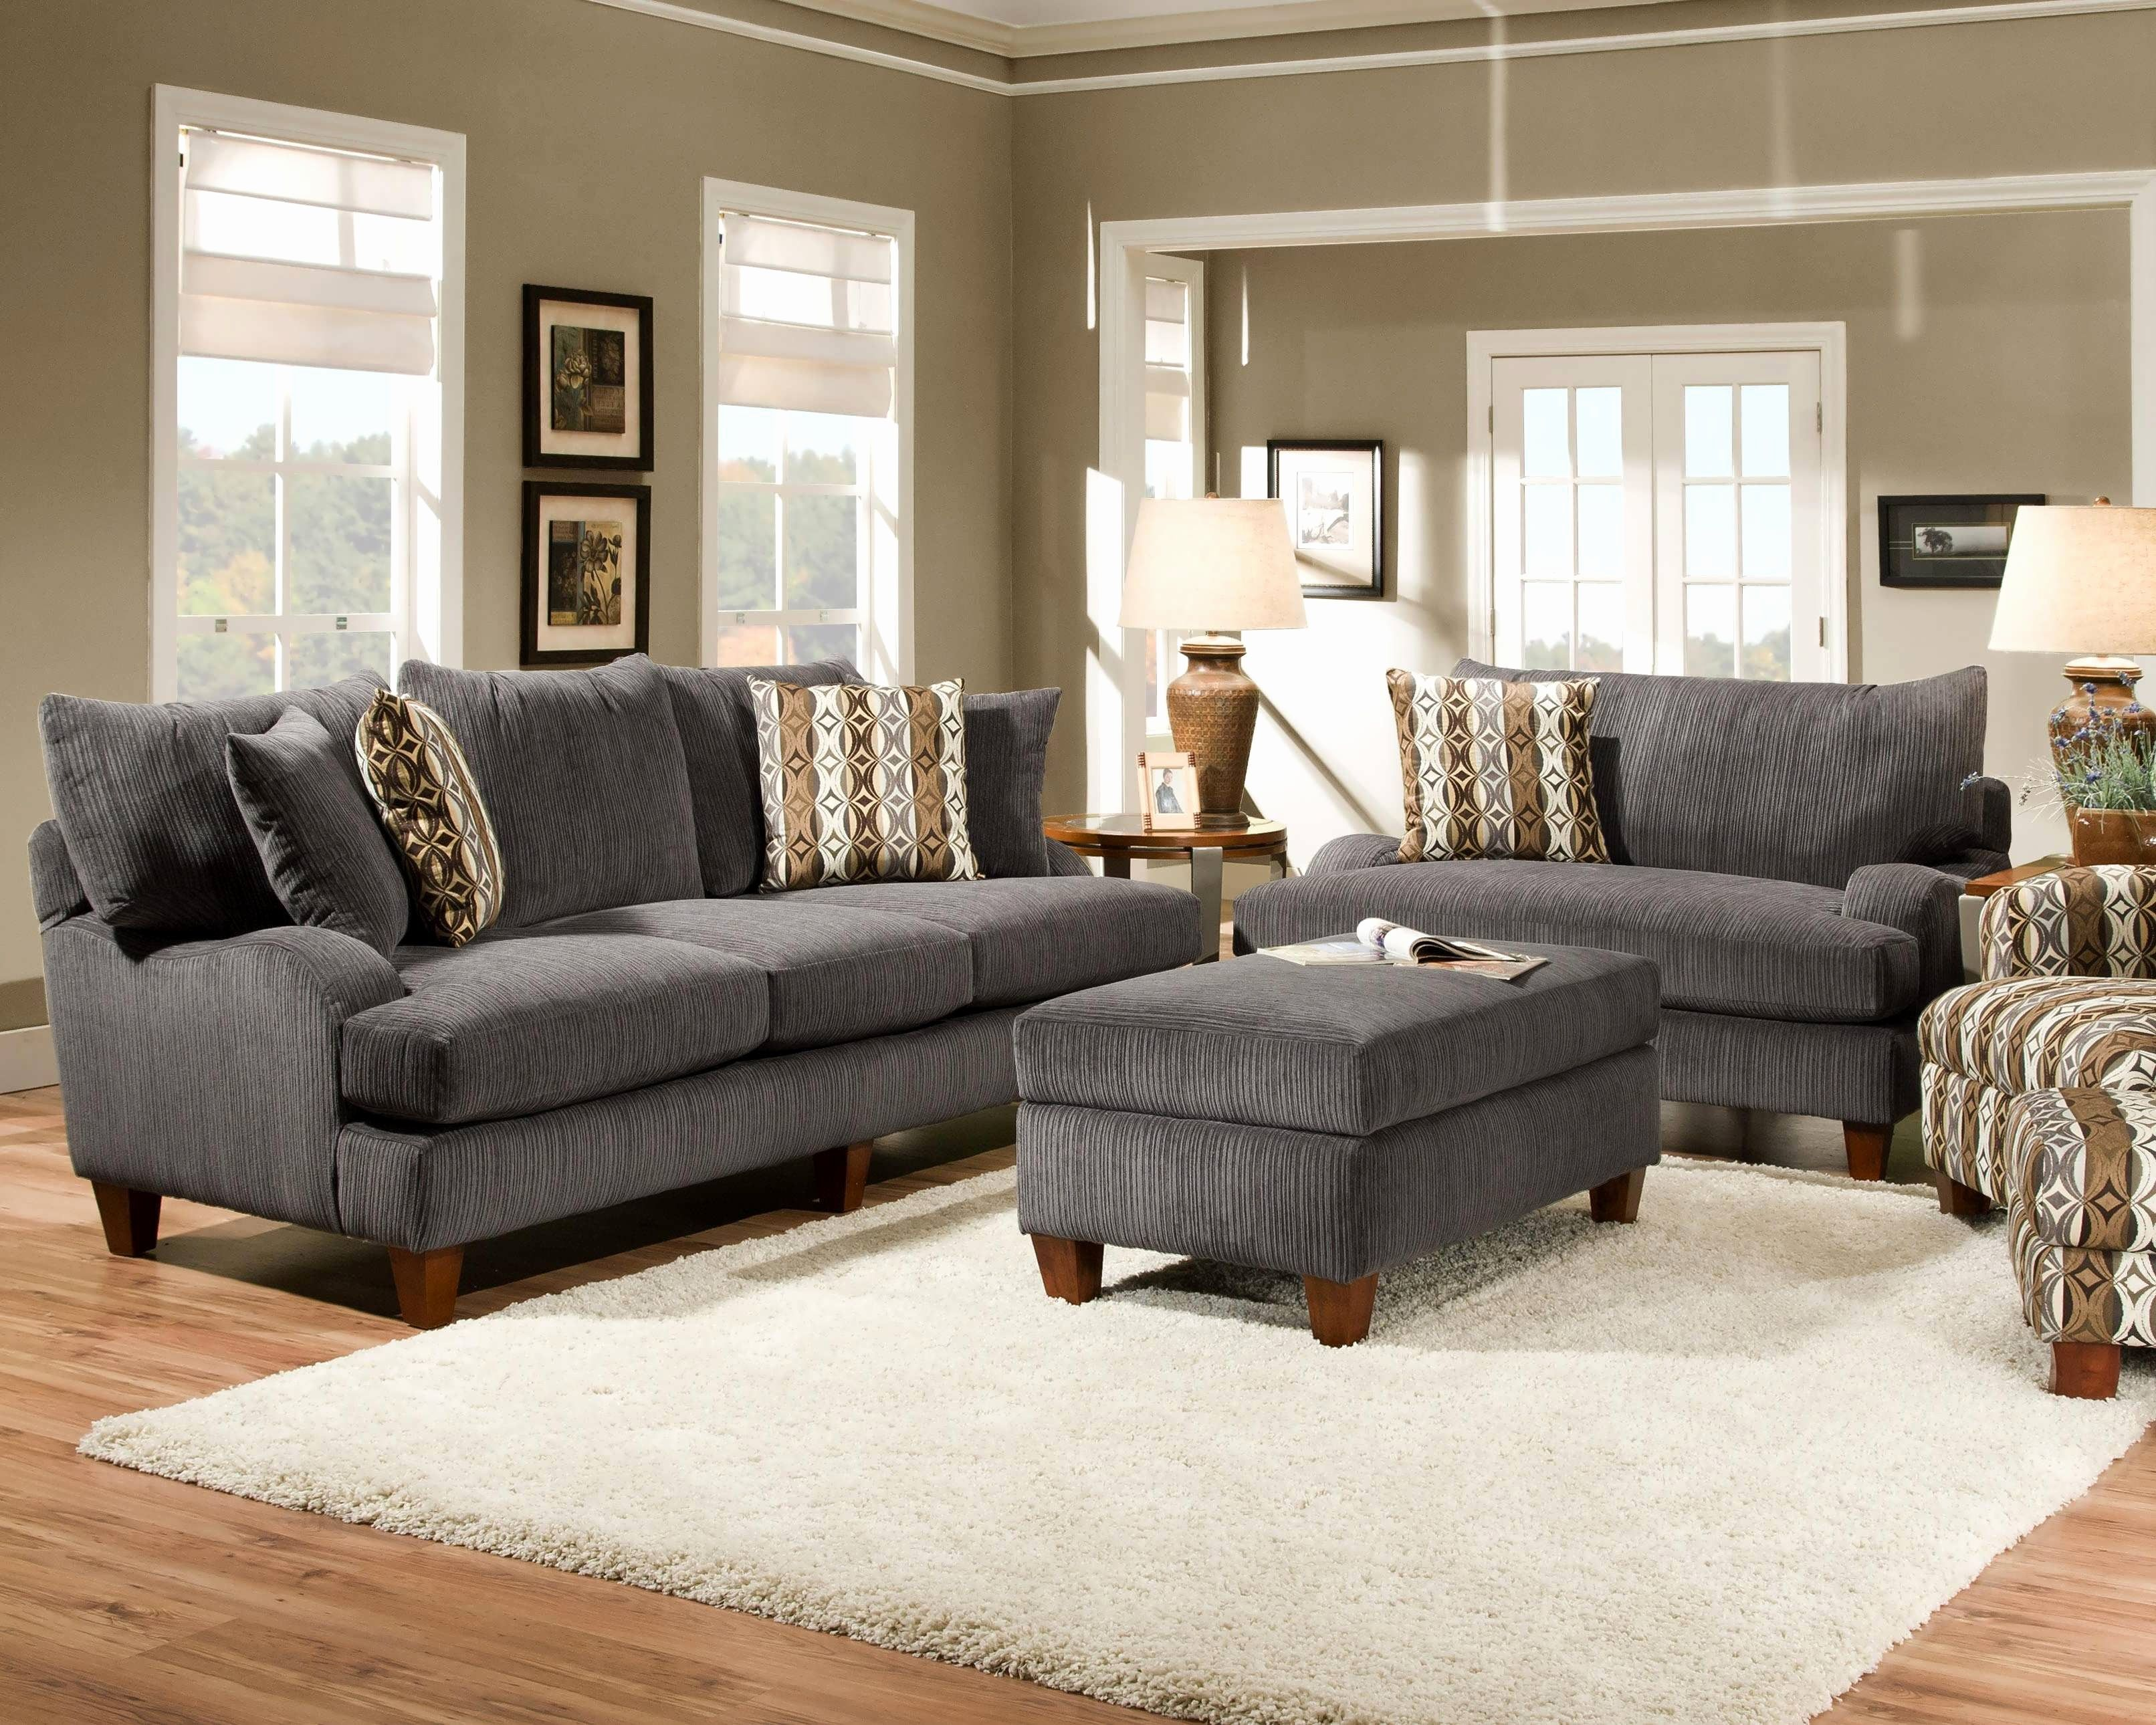 dark gray sofa eilersen baseline m chaiselong good sofas set photograpy amazing reclining